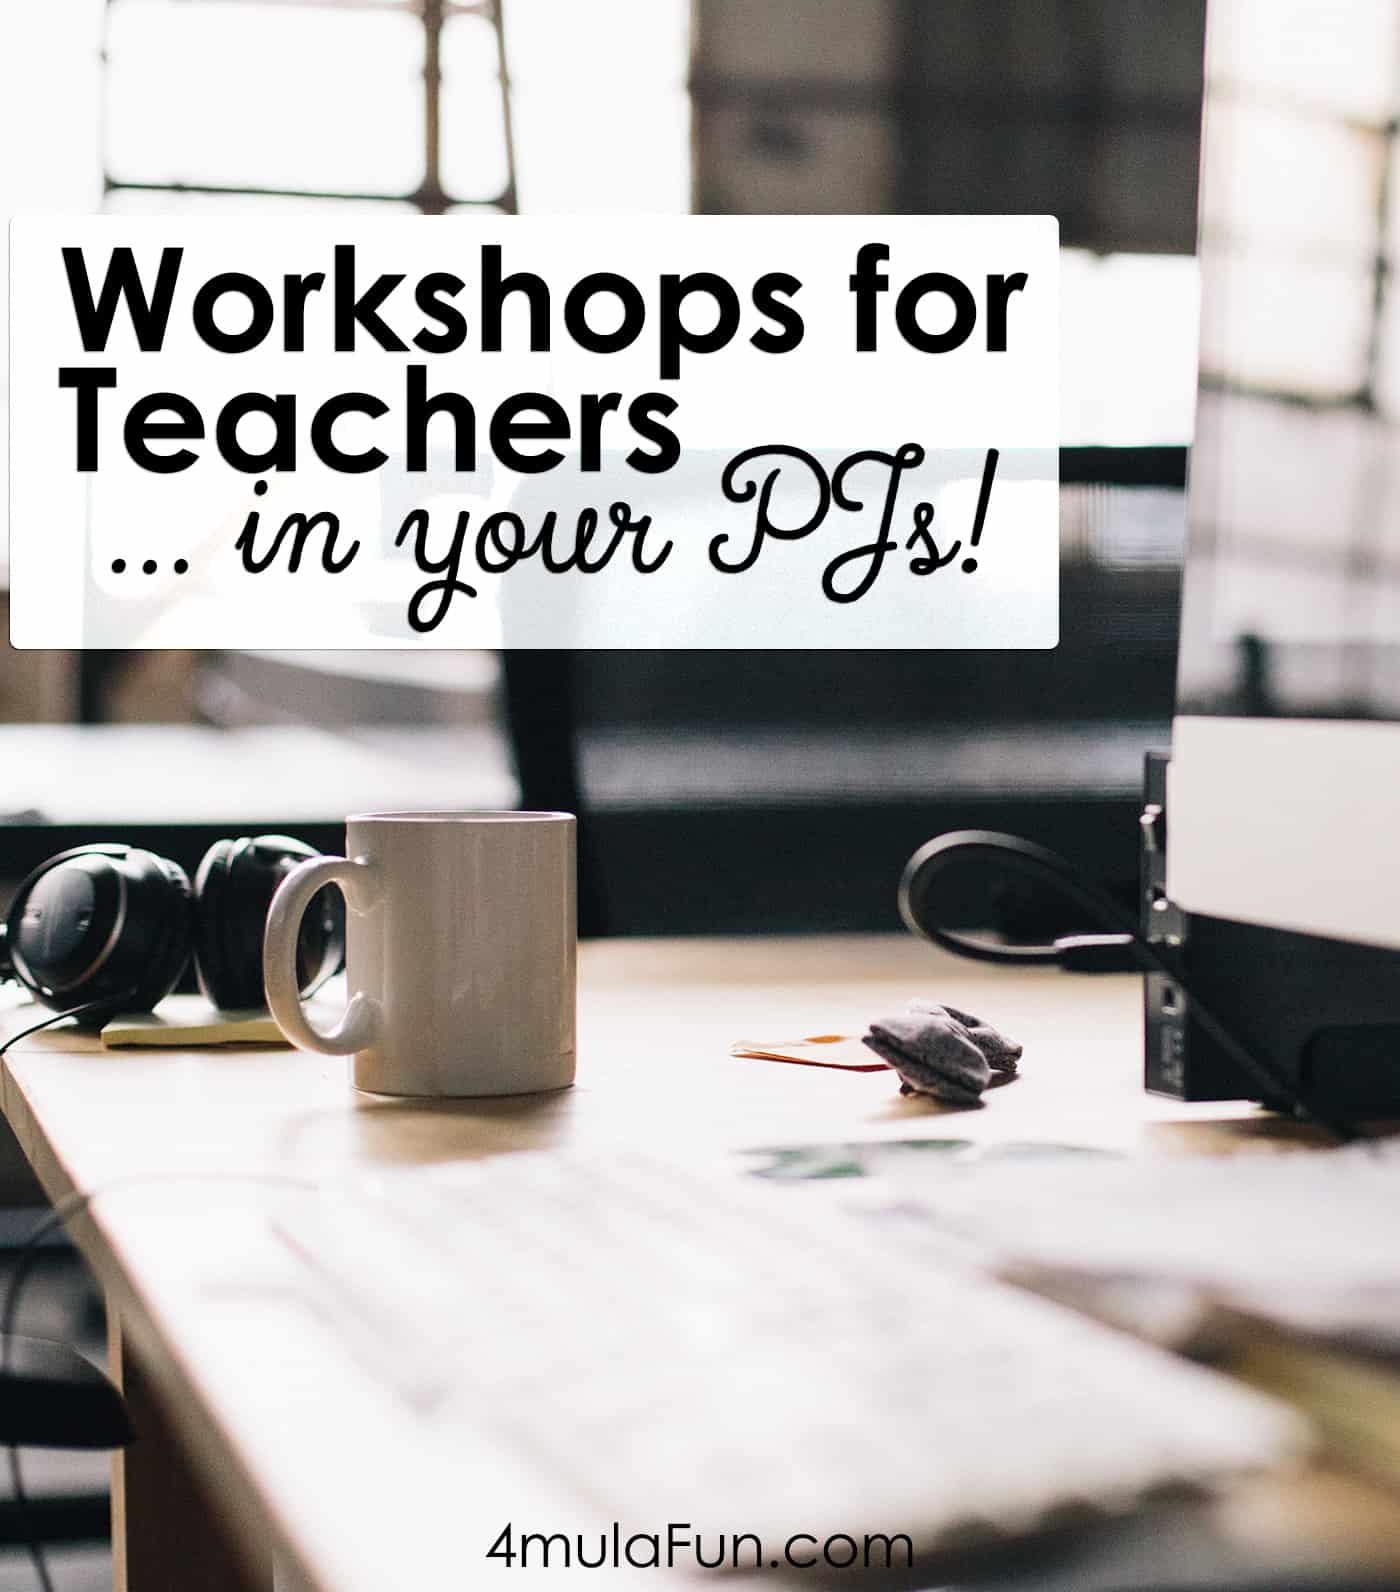 Work on your professional development in differential curriculum or interactive notebooks without even leaving the comfort of your own home! Here's all the info on how you can attend continuing education workshops for educators online!